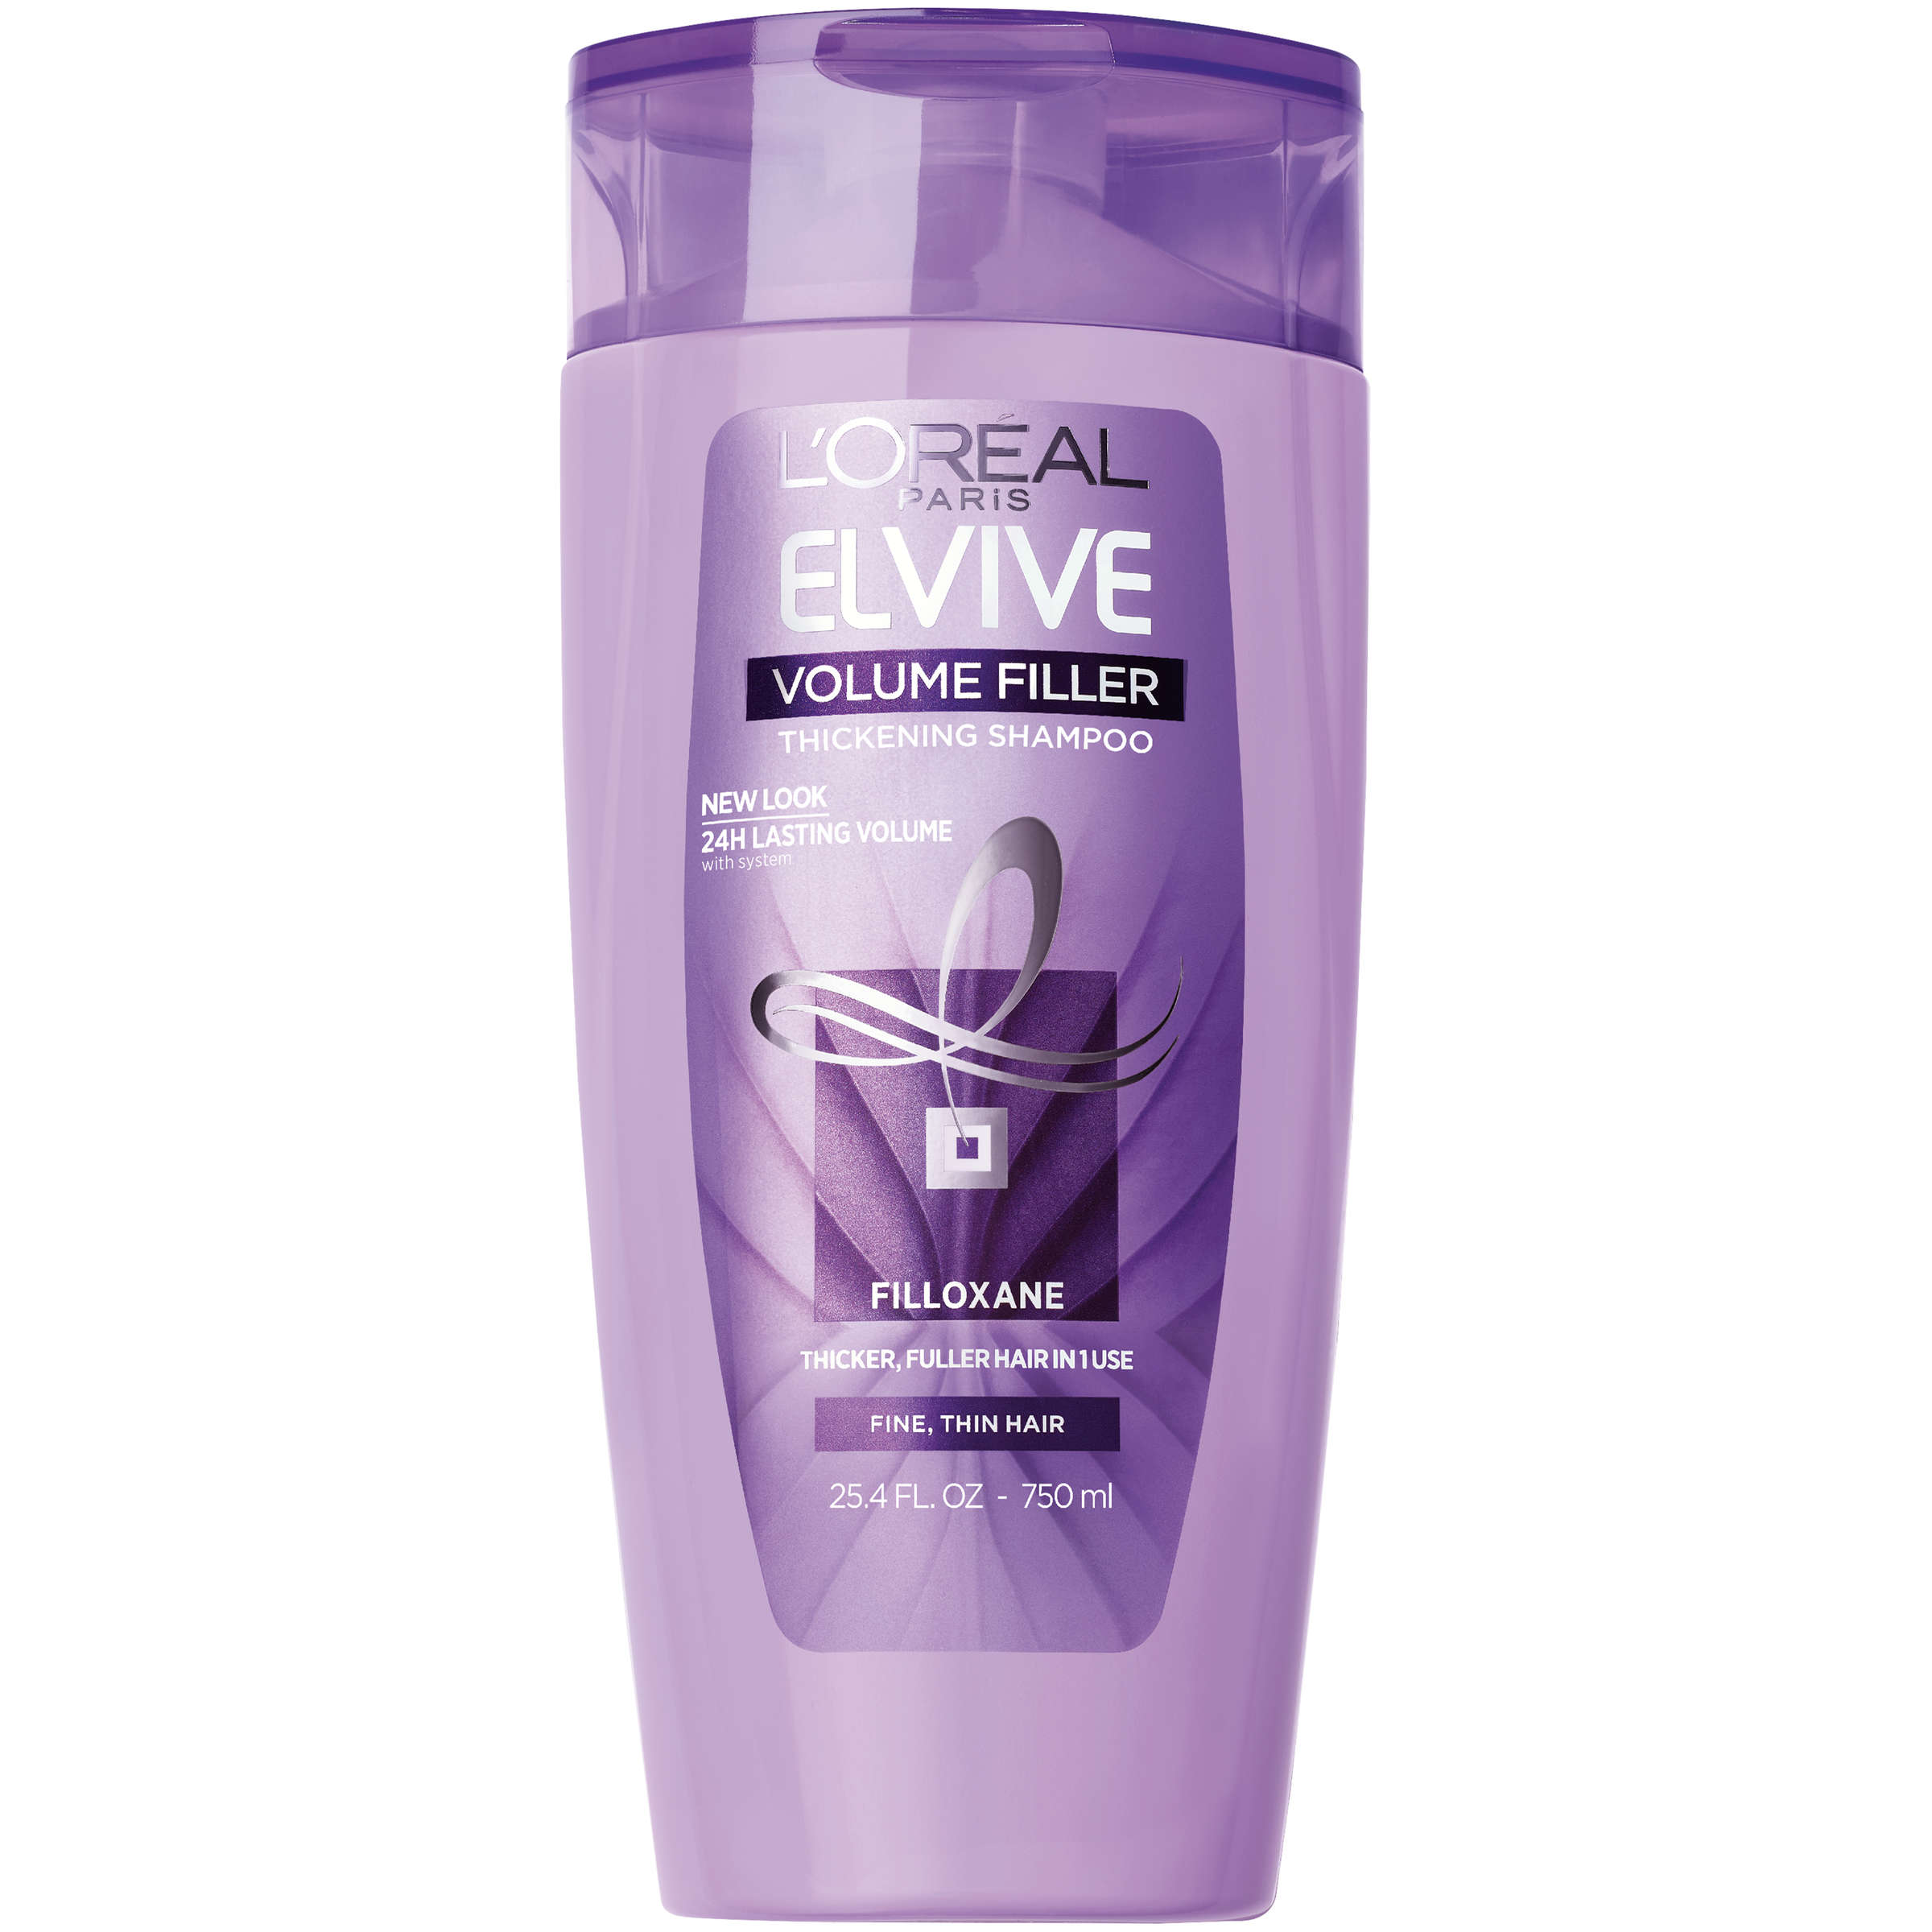 L'Oreal Paris Elvive Volume Filler Thickening Shampoo 25.4 FL OZ